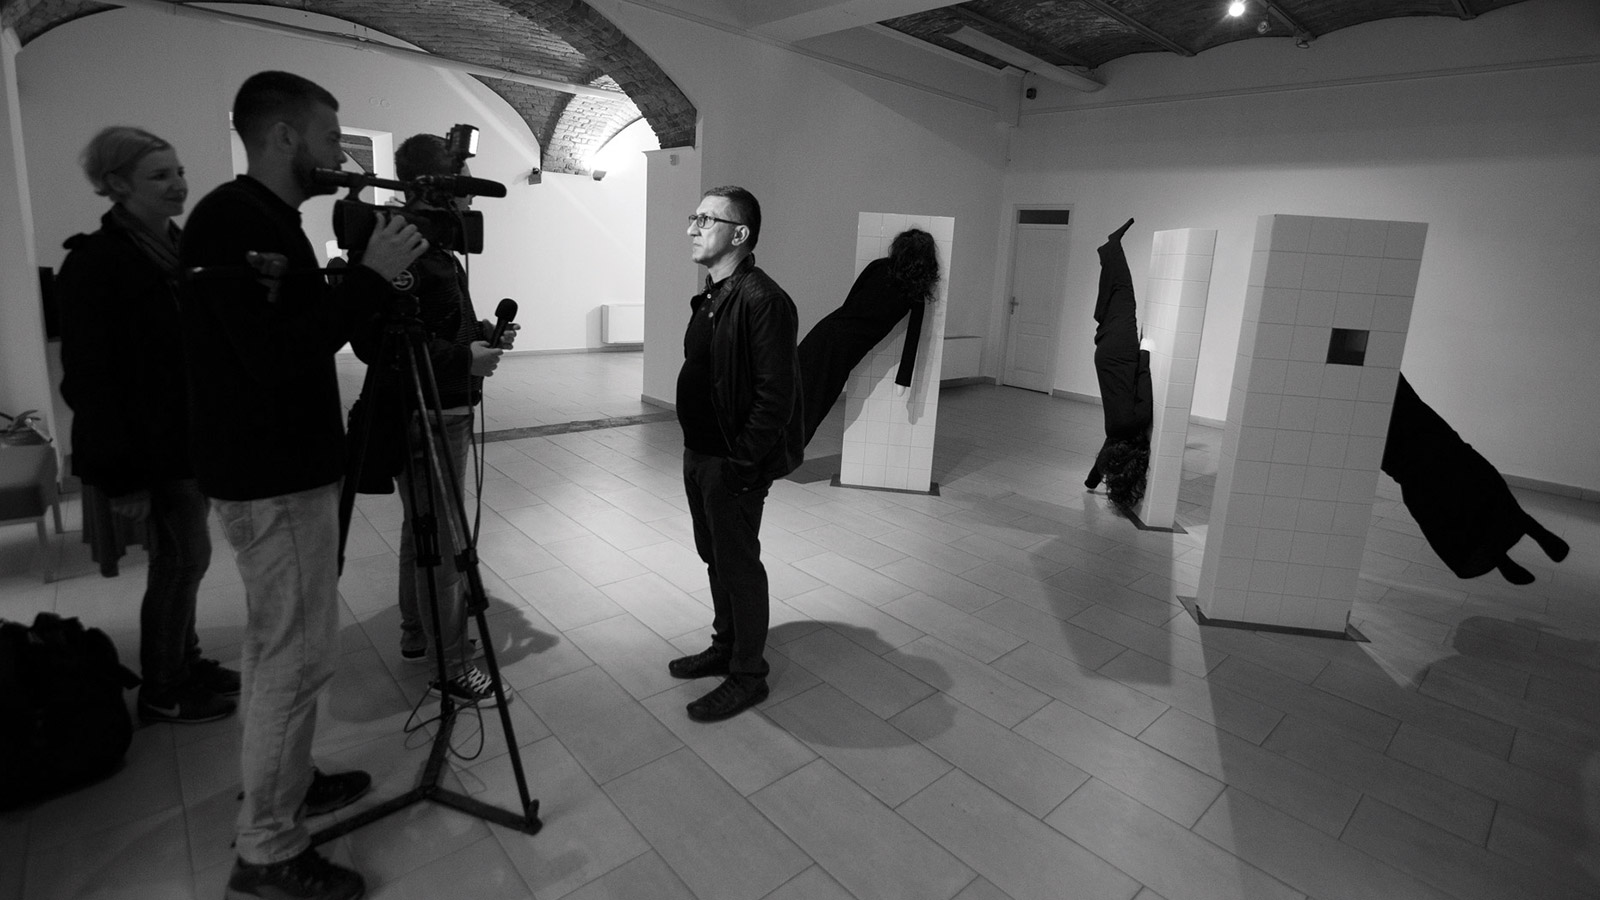 Goran Despotovski-The Gallery Of Contemporary Art, Pančevo 2017